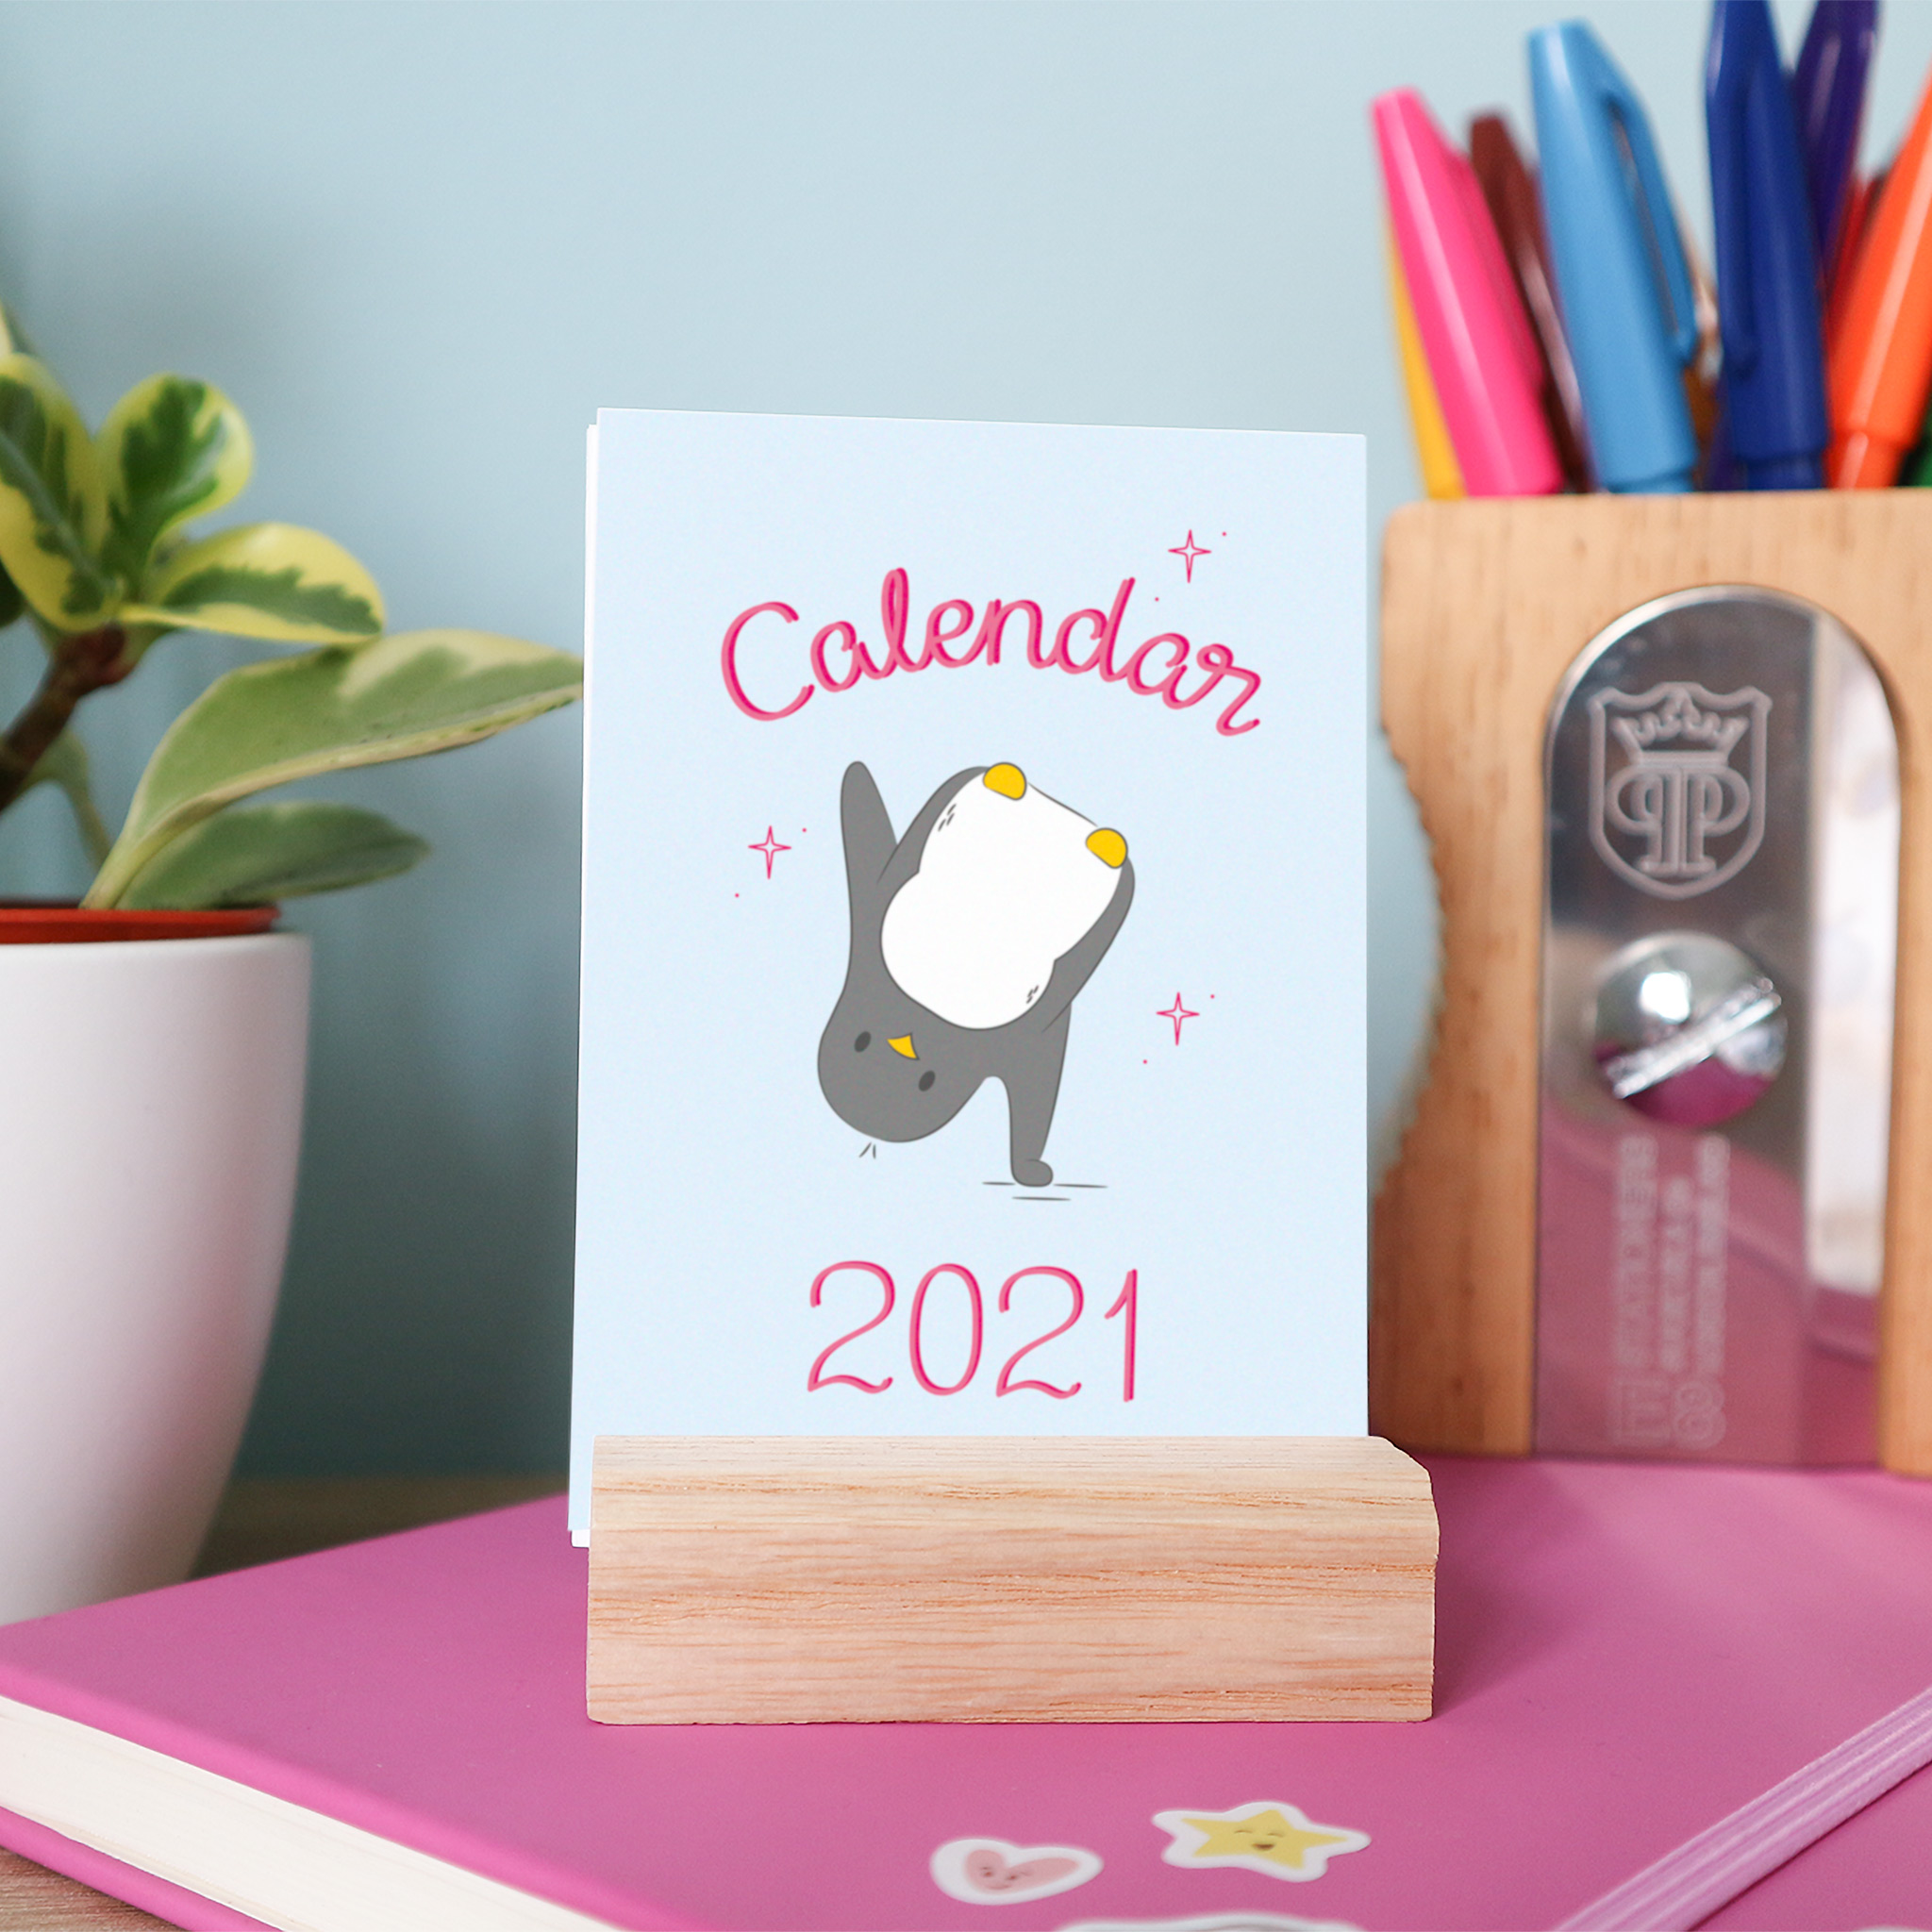 The front page of the 2021 calendar is an illustration of penguin cartwheeling, it has a pale blue background and the words calendar 2021 are hand-lettered in pink. The calendar is styled on the wooden stand, and in the background is a pencil pot and a leafy plant.